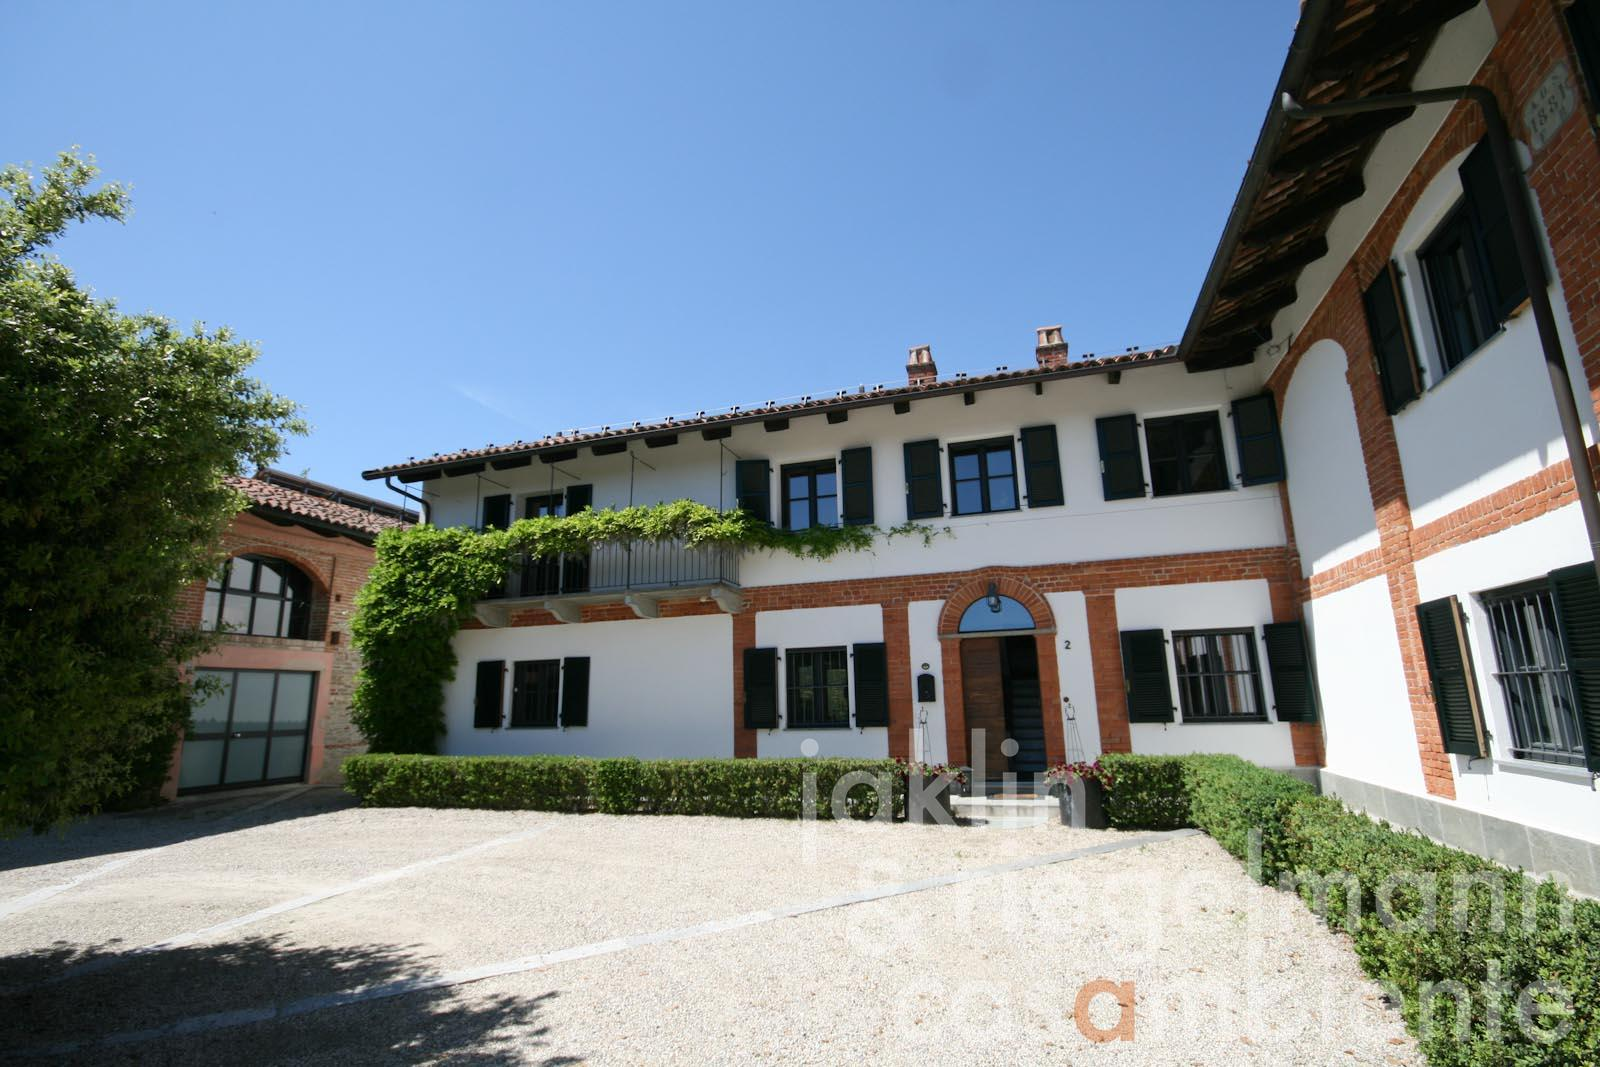 The excellently restored country estate close to Alba and the Barolo region in Piedmont